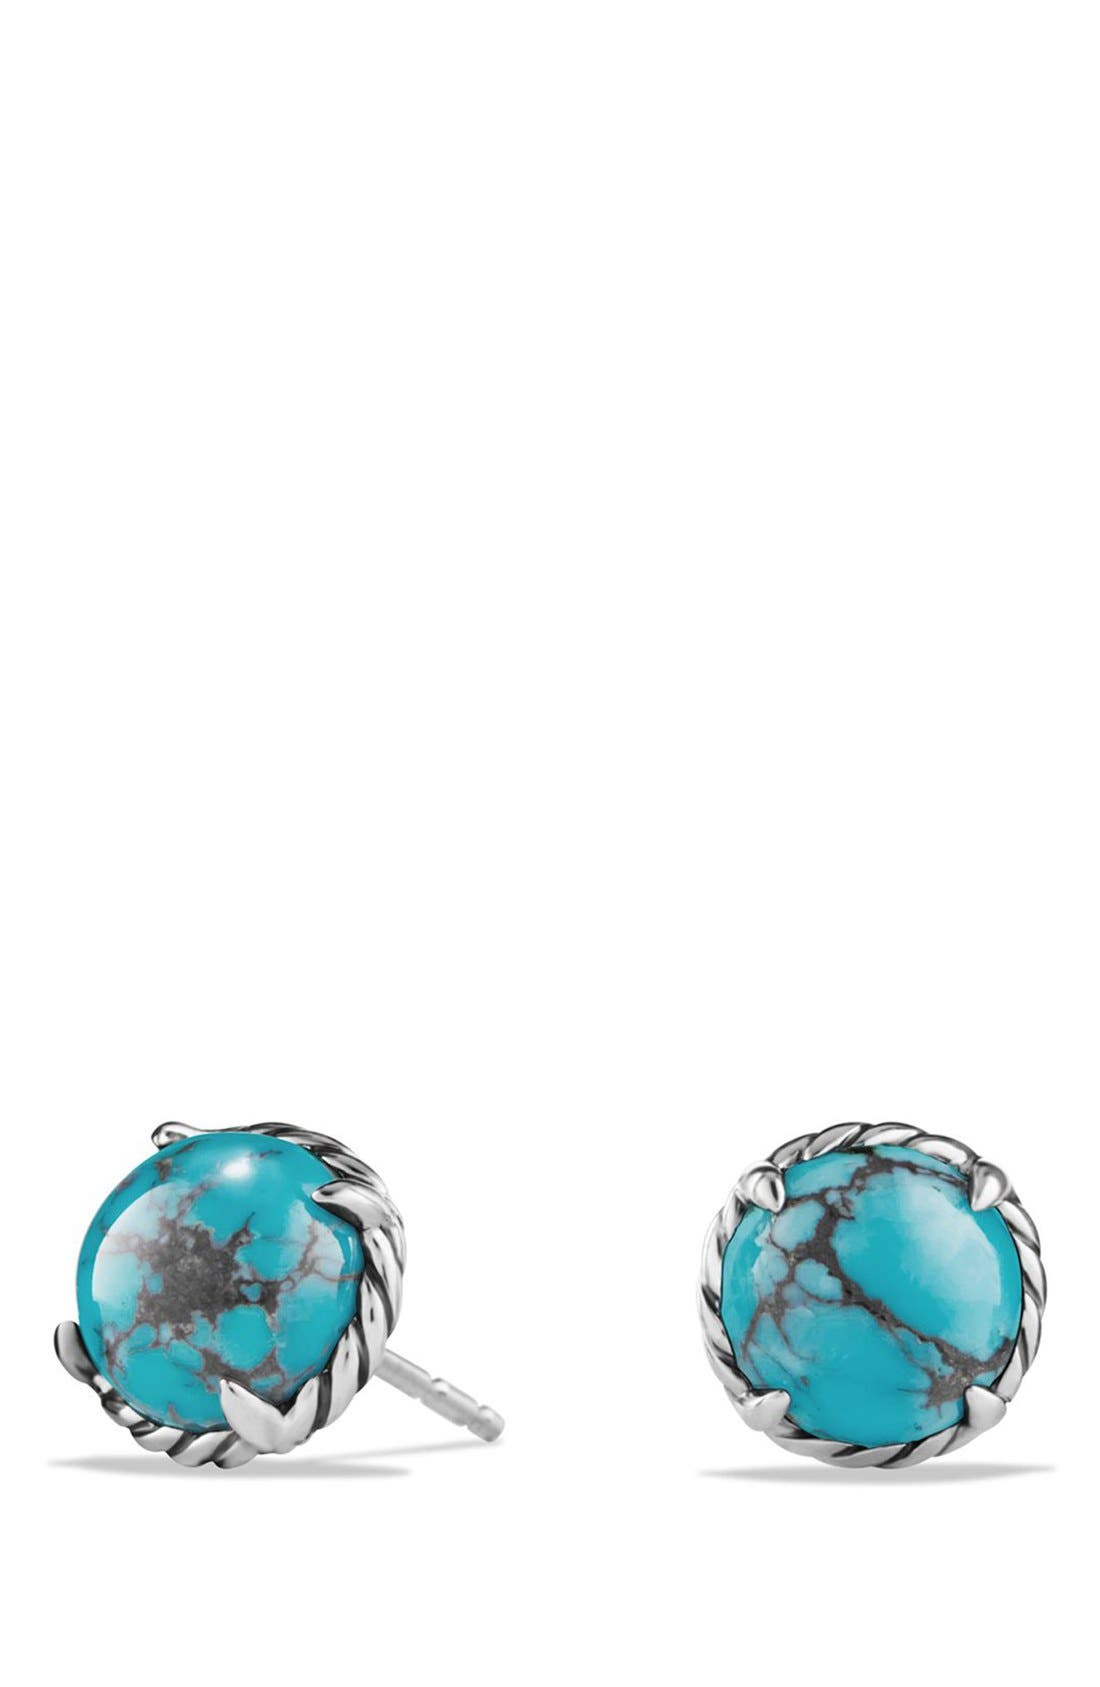 'Châtelaine' Earrings,                             Main thumbnail 1, color,                             SILVER/ CHINESE TURQUOISE